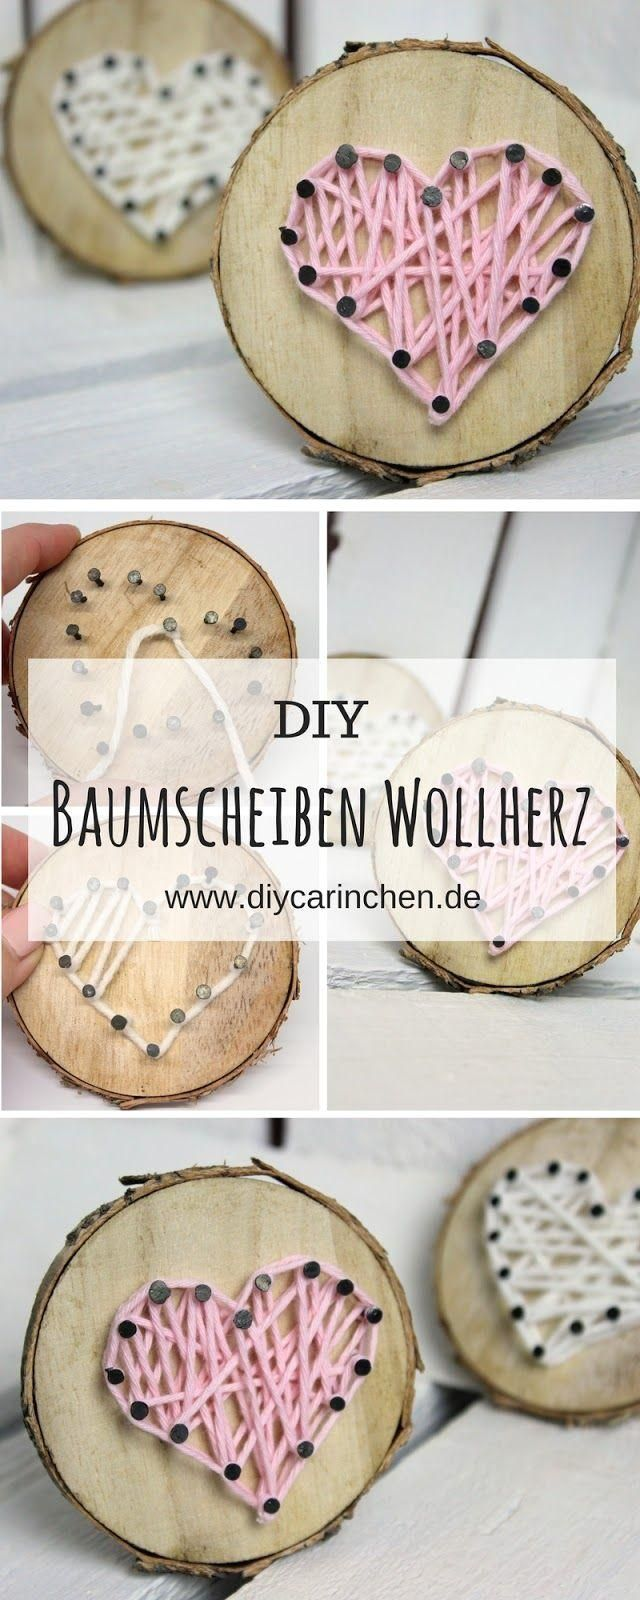 DIY sweet gift for Valentine's Day, Mother's Day or as a decoration: Tree disc with heart in string Art ♡